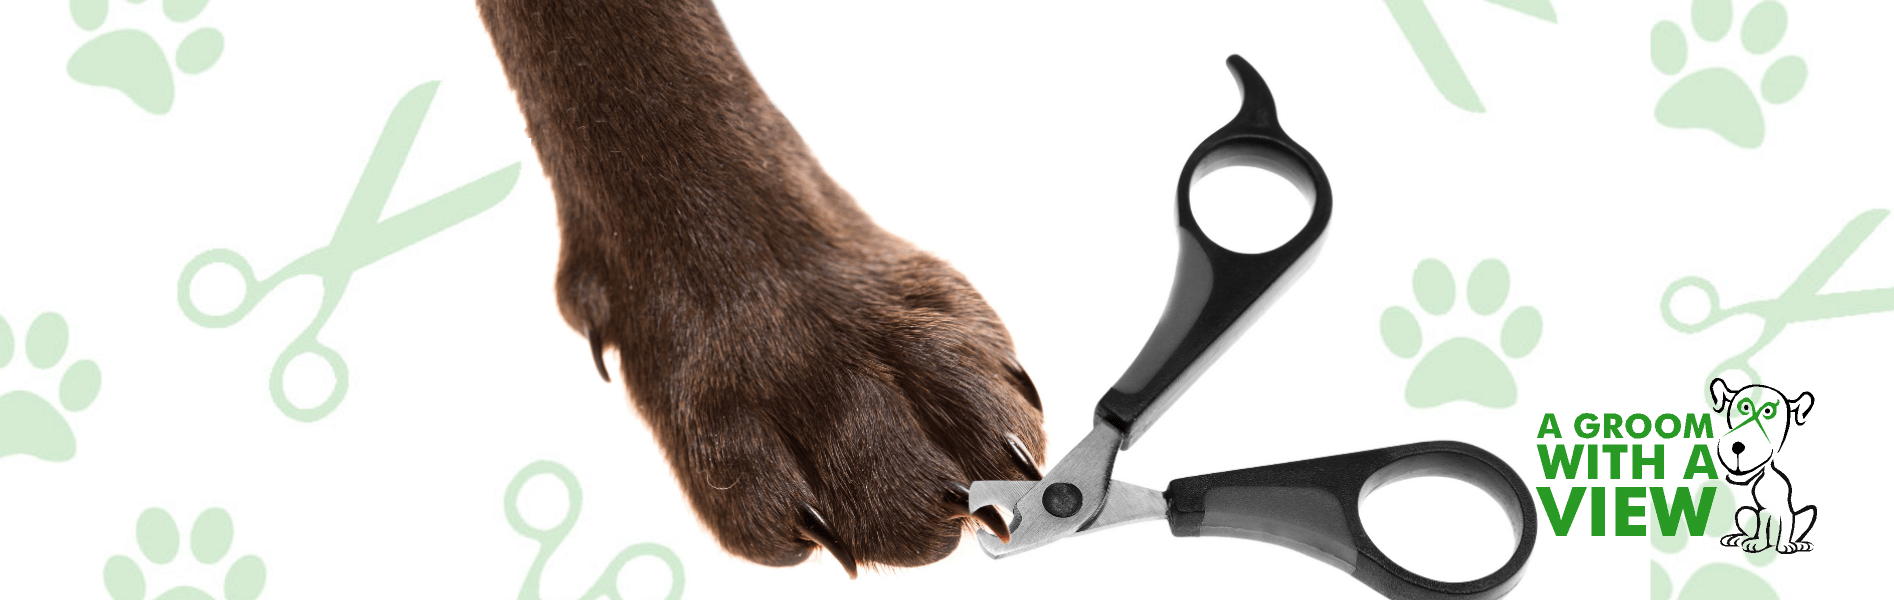 dog grooming-nail clipping